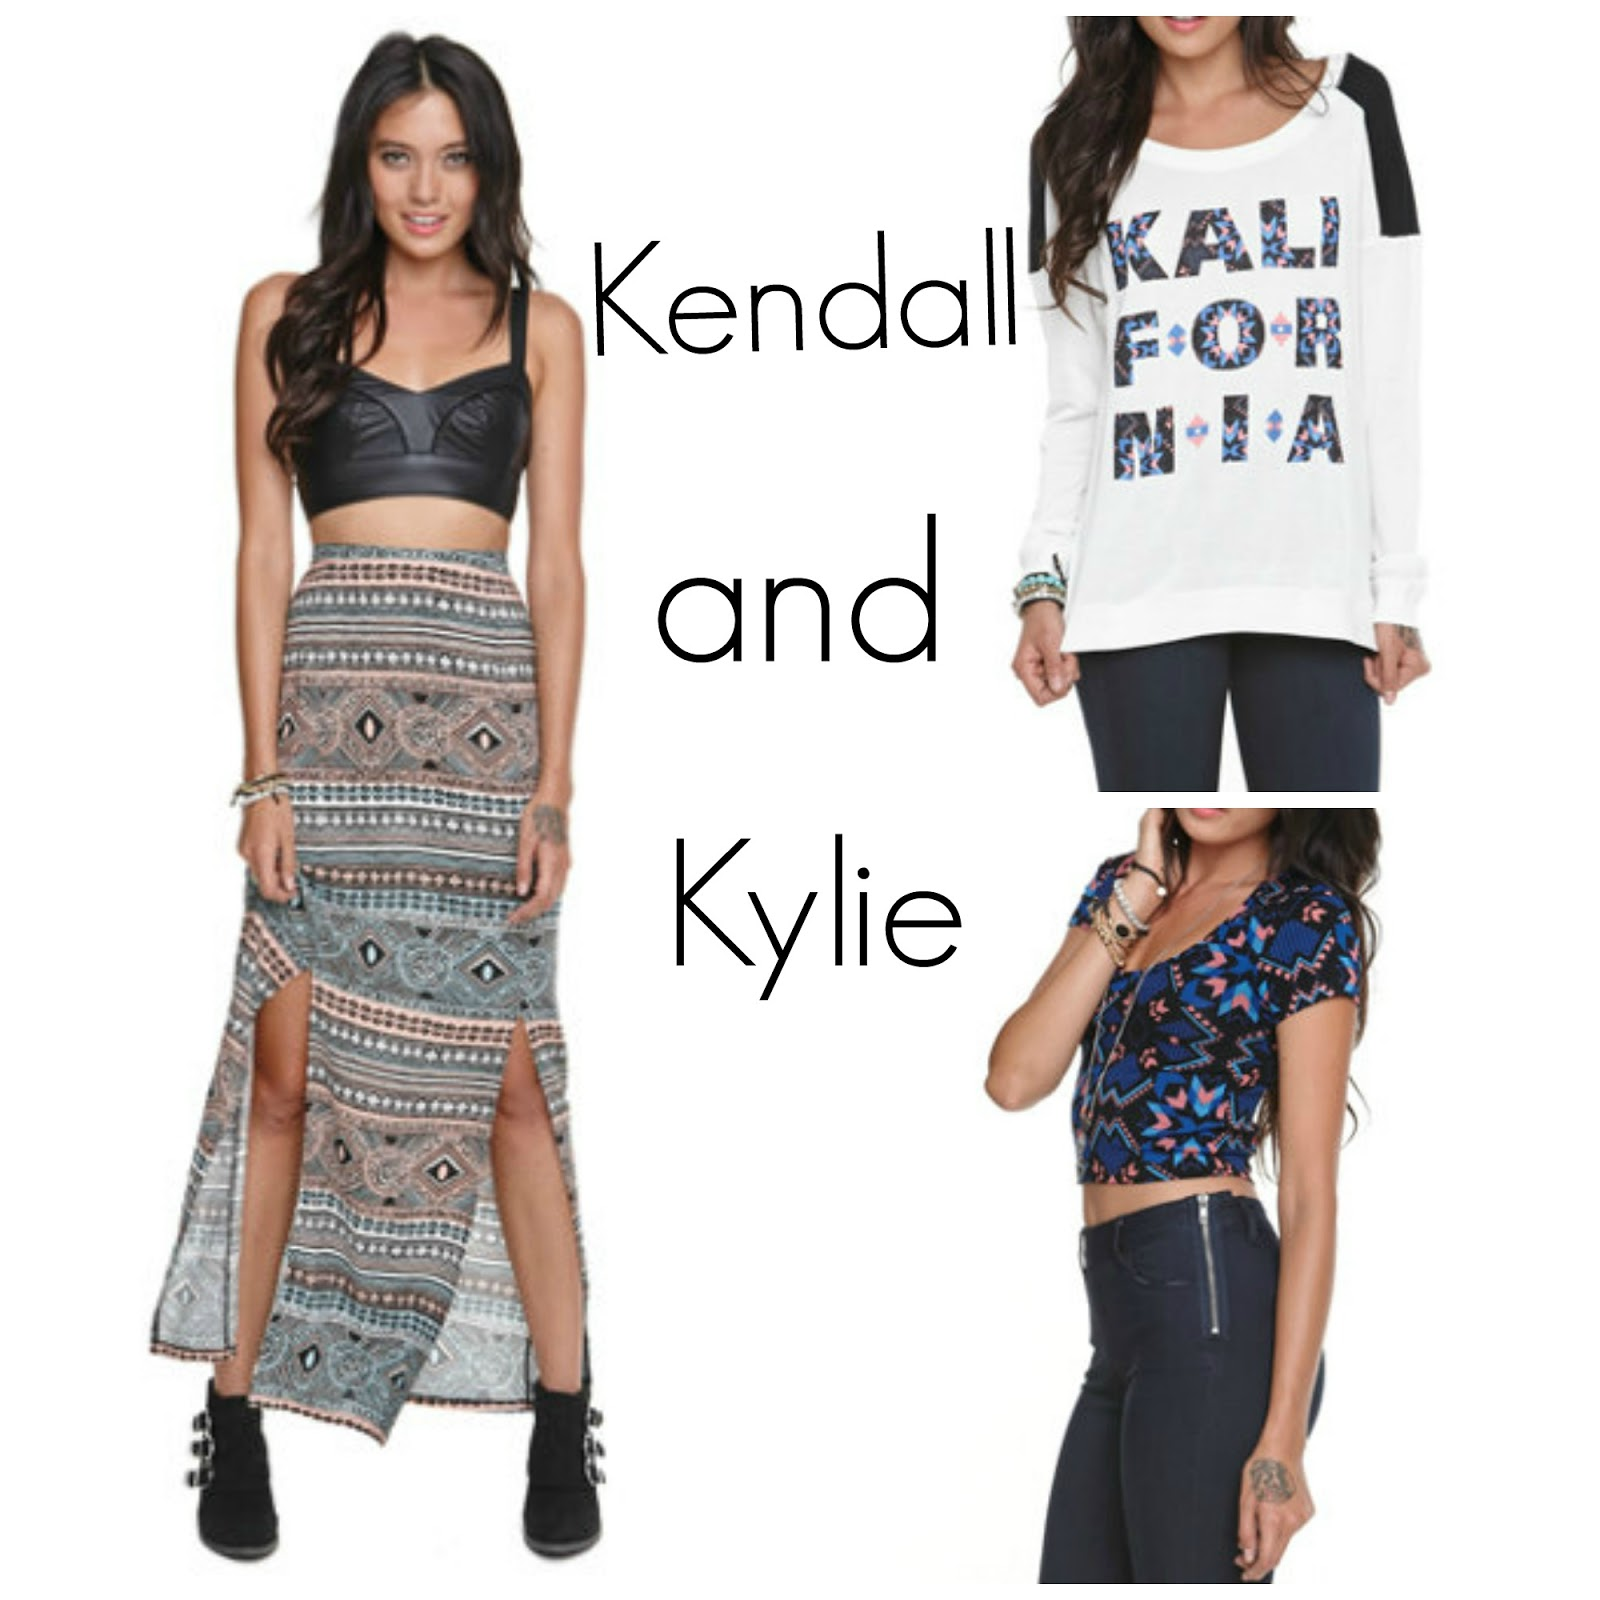 pretty amp pearls kendall and kylie collection at pacsun